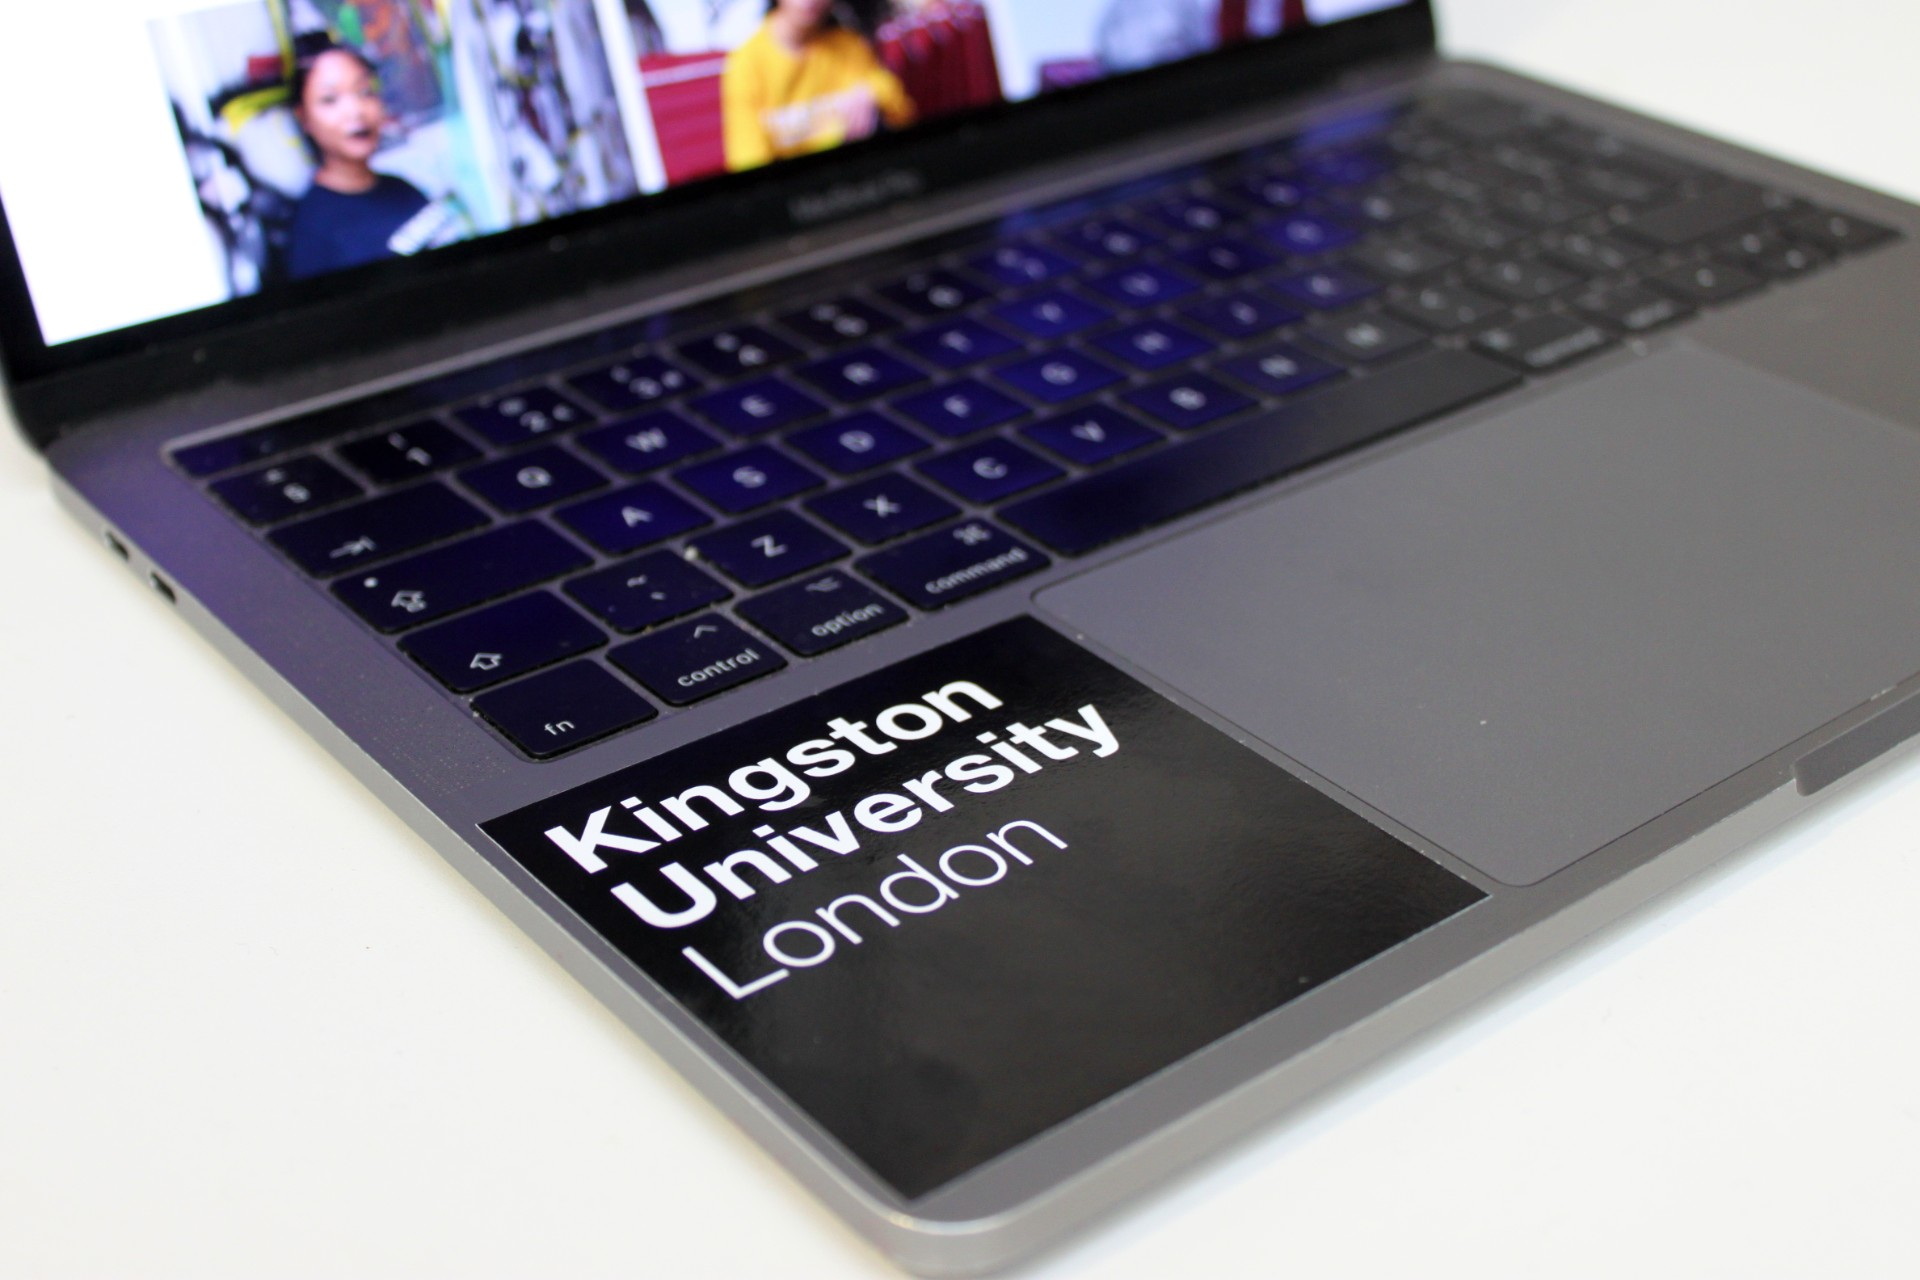 Kingston Uni Sticker